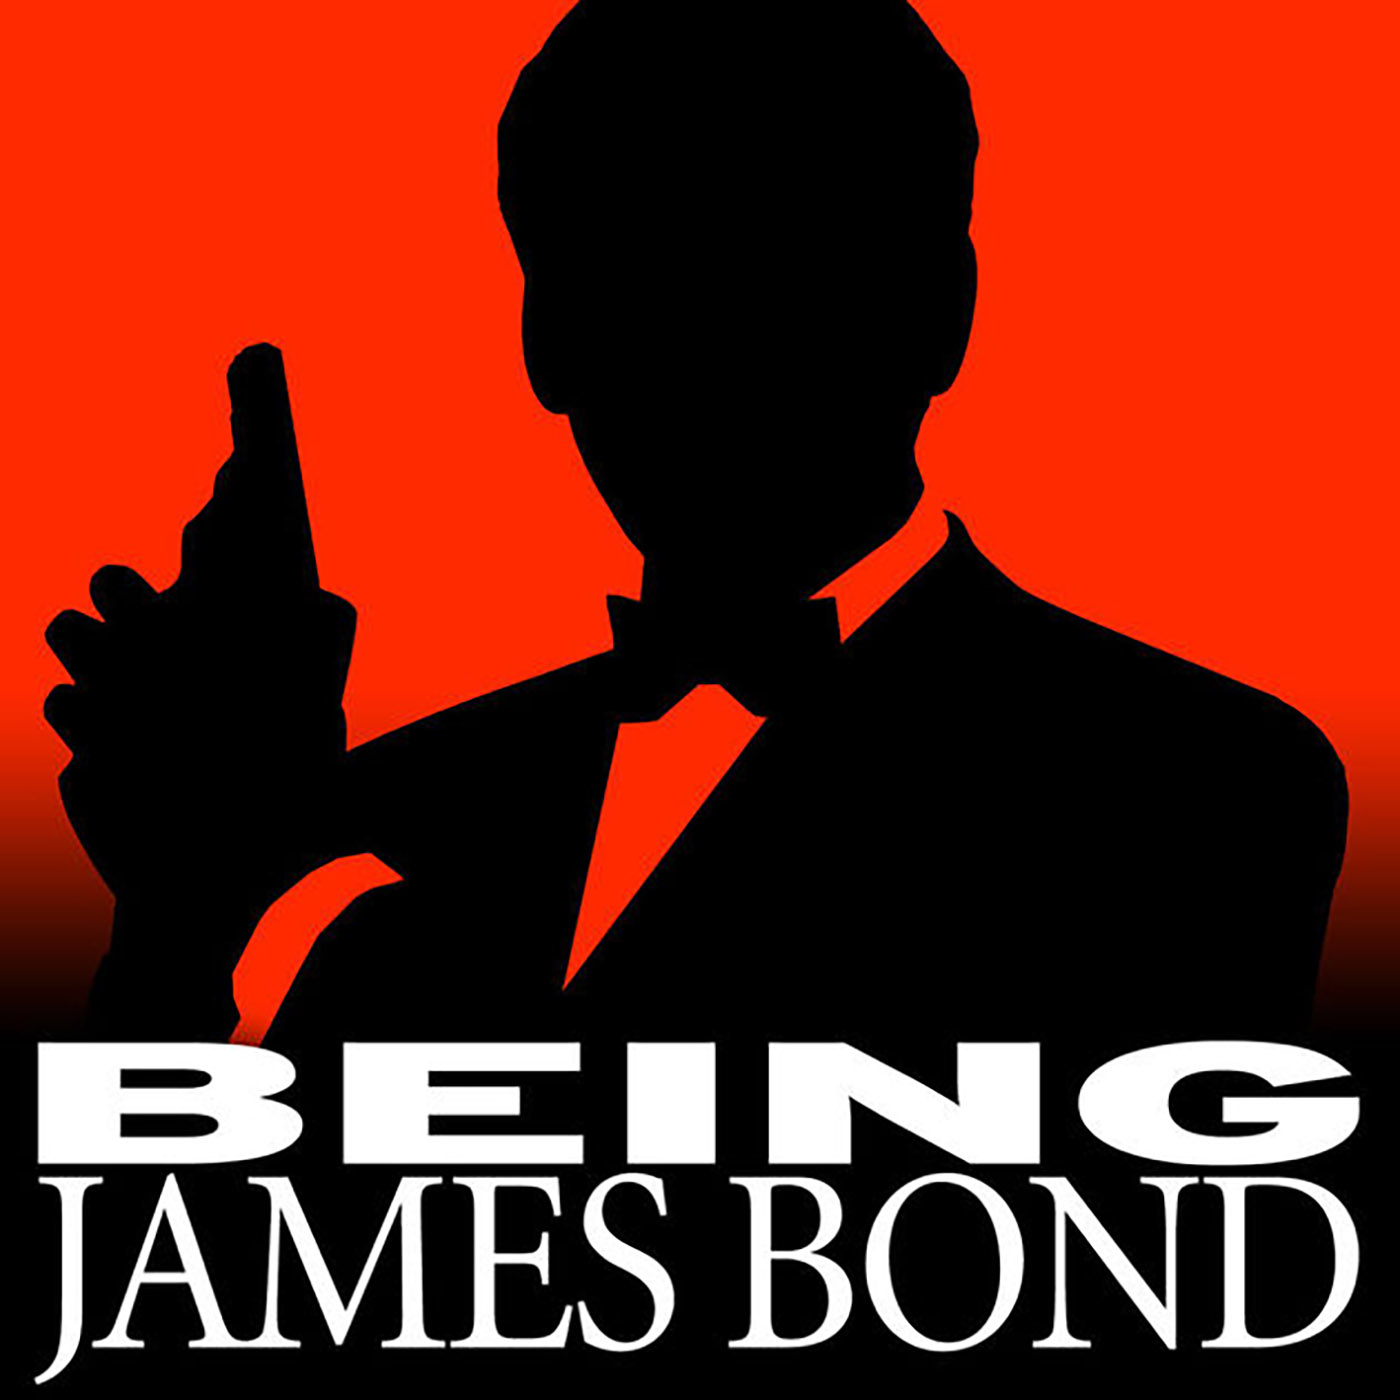 Episode 231 - Another 7 James Bond Podcasts You Might Not Know Yet